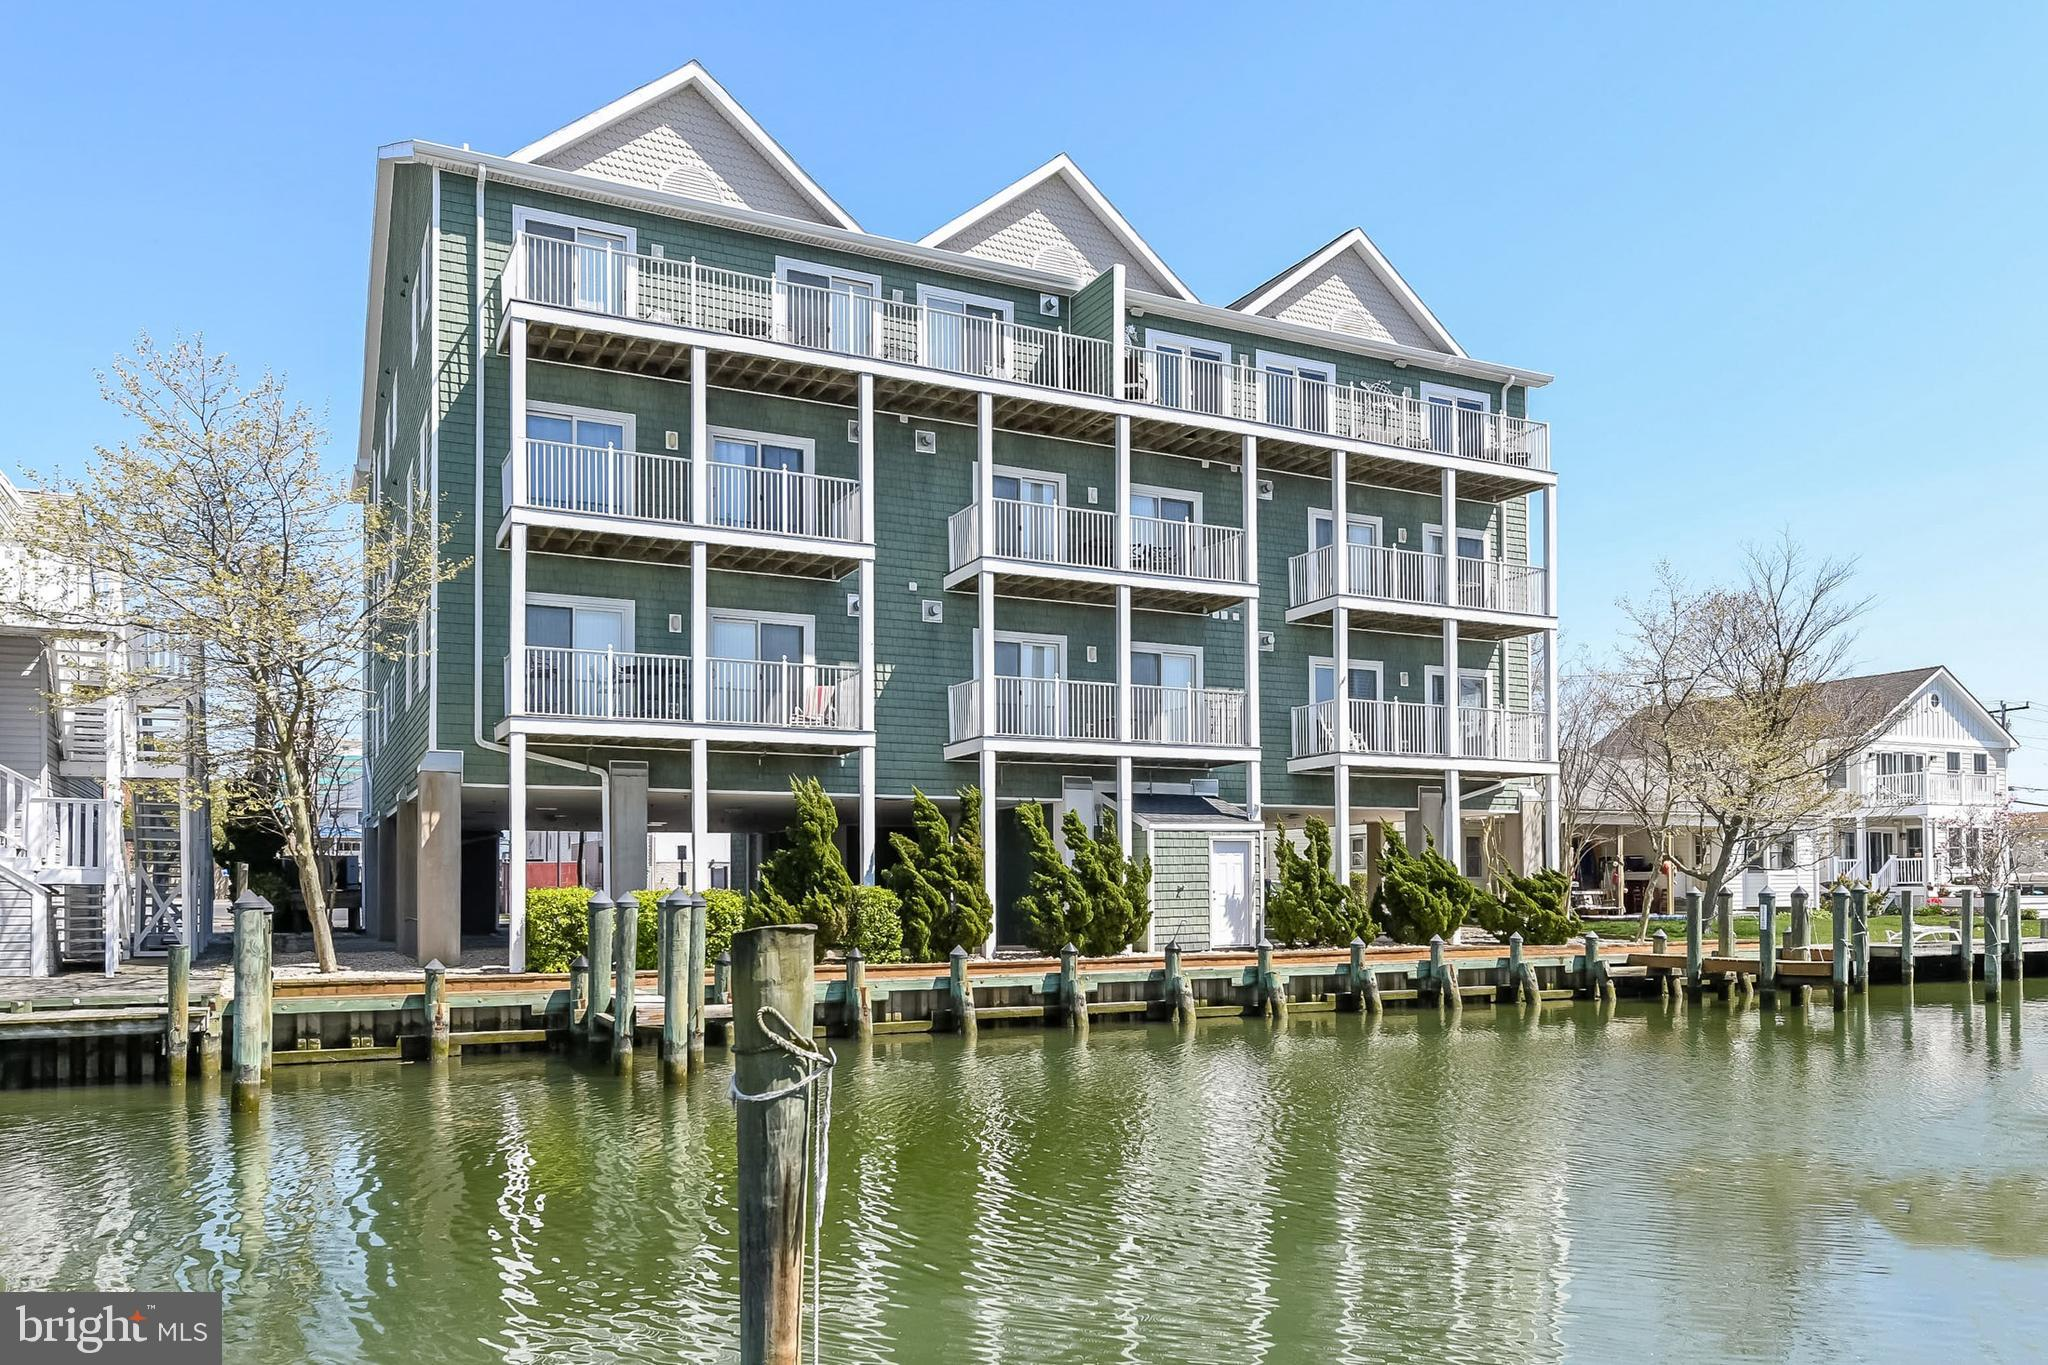 This turn-key, open concept, waterfront condo, in the highly-desired building, Anchors Aweigh, is just what you've been looking for! It has everything: location, views, luxury finishes, premium furnishings & most importantly, a deeded boat slip is included which you do not pay extra taxes on! The original owners, who have never rented this condo, did not skimp and thought of everything when renovating this gorgeous condo in 2017. This 3-bedroom, 3-bathroom, 2nd floor condo has breath-taking views from the balcony of the bay and even ocean views from the front entrance, which is perfect for watching the renowned Air Show every summer. There is crown and baseboard molding throughout the whole home, along with upgraded carpet in the bedrooms & living area, and tile in the foyer, kitchen, laundry room & bathrooms. The ceiling has been insulated for enhanced temperature control and energy-efficiency, (this is the only unit in the building with this feature.) Each bedroom has its own full bath with tiled showers and linen closet. Additionally, each has upgraded ceiling fans with light fixture, along with the living room, and there are two spacious, walk-in closets in the master and 2nd bedroom. The master bathroom also includes a jetted tub to relax after a long day at the White Marlin Open weigh-in, which is right around the corner. From the master bedroom and the living room,  where there is a beautiful custom cornice over the sliding glass doors, you can access the spacious balcony with composite decking & wrapped columns.  There are plantation shutters in the 2nd & 3rd bedrooms. The living room & the 2nd bedroom have TV's mounted on the wall for convenience. Below the TV in the living room, you'll find a gas fireplace covered with glass doors and the gas for the fireplace is included in the condo fees! If you like to cook, you will totally love the kitchen that is full of energy star, stainless steel appliances, as well as granite counter tops and recessed lighting. There is a breakfast bar with stools, along with a full dining room set that seats 6, so the whole family can dine in. You also have a large pantry/storage closet off the kitchen.  Take note of the extra large square footage this unit has to offer as the units on each side of this are smaller. If you want a break from cooking, there are so many great restaurants within walking distance. It's also very convenient having CVS right across the street for quick shopping. But more importantly, the beach & boardwalk are just 3 blocks away! You will never need to worry about parking in this prime location, as there is an assigned parking spot, plus 5 others available on a First Come, First Served basis, underneath the building, and plenty of street parking. You also won't have to lug bikes, beach chairs or sand up to this immaculate home, as there is a storage room, bike storage & an outdoor shower. There are only two boat slips for this building, and this unit includes one of them, recently having the dock boards replaced, and can house up to a 25 foot boat.  The lobby is secure and has an elevator to access the 2nd floor, where the condo is located. The front door has a keypad, along with key entry for easy access. For peace of mind, the Sellers are paying for a 1-year Home Warranty. What more could you ask for when you have all of this at the Beach! Take a look at our virtual showing first and then schedule your showing today to appreciate all of the beauty that can be yours!  To maintain the beauty of this unit, kindly remove shoes upon entering!